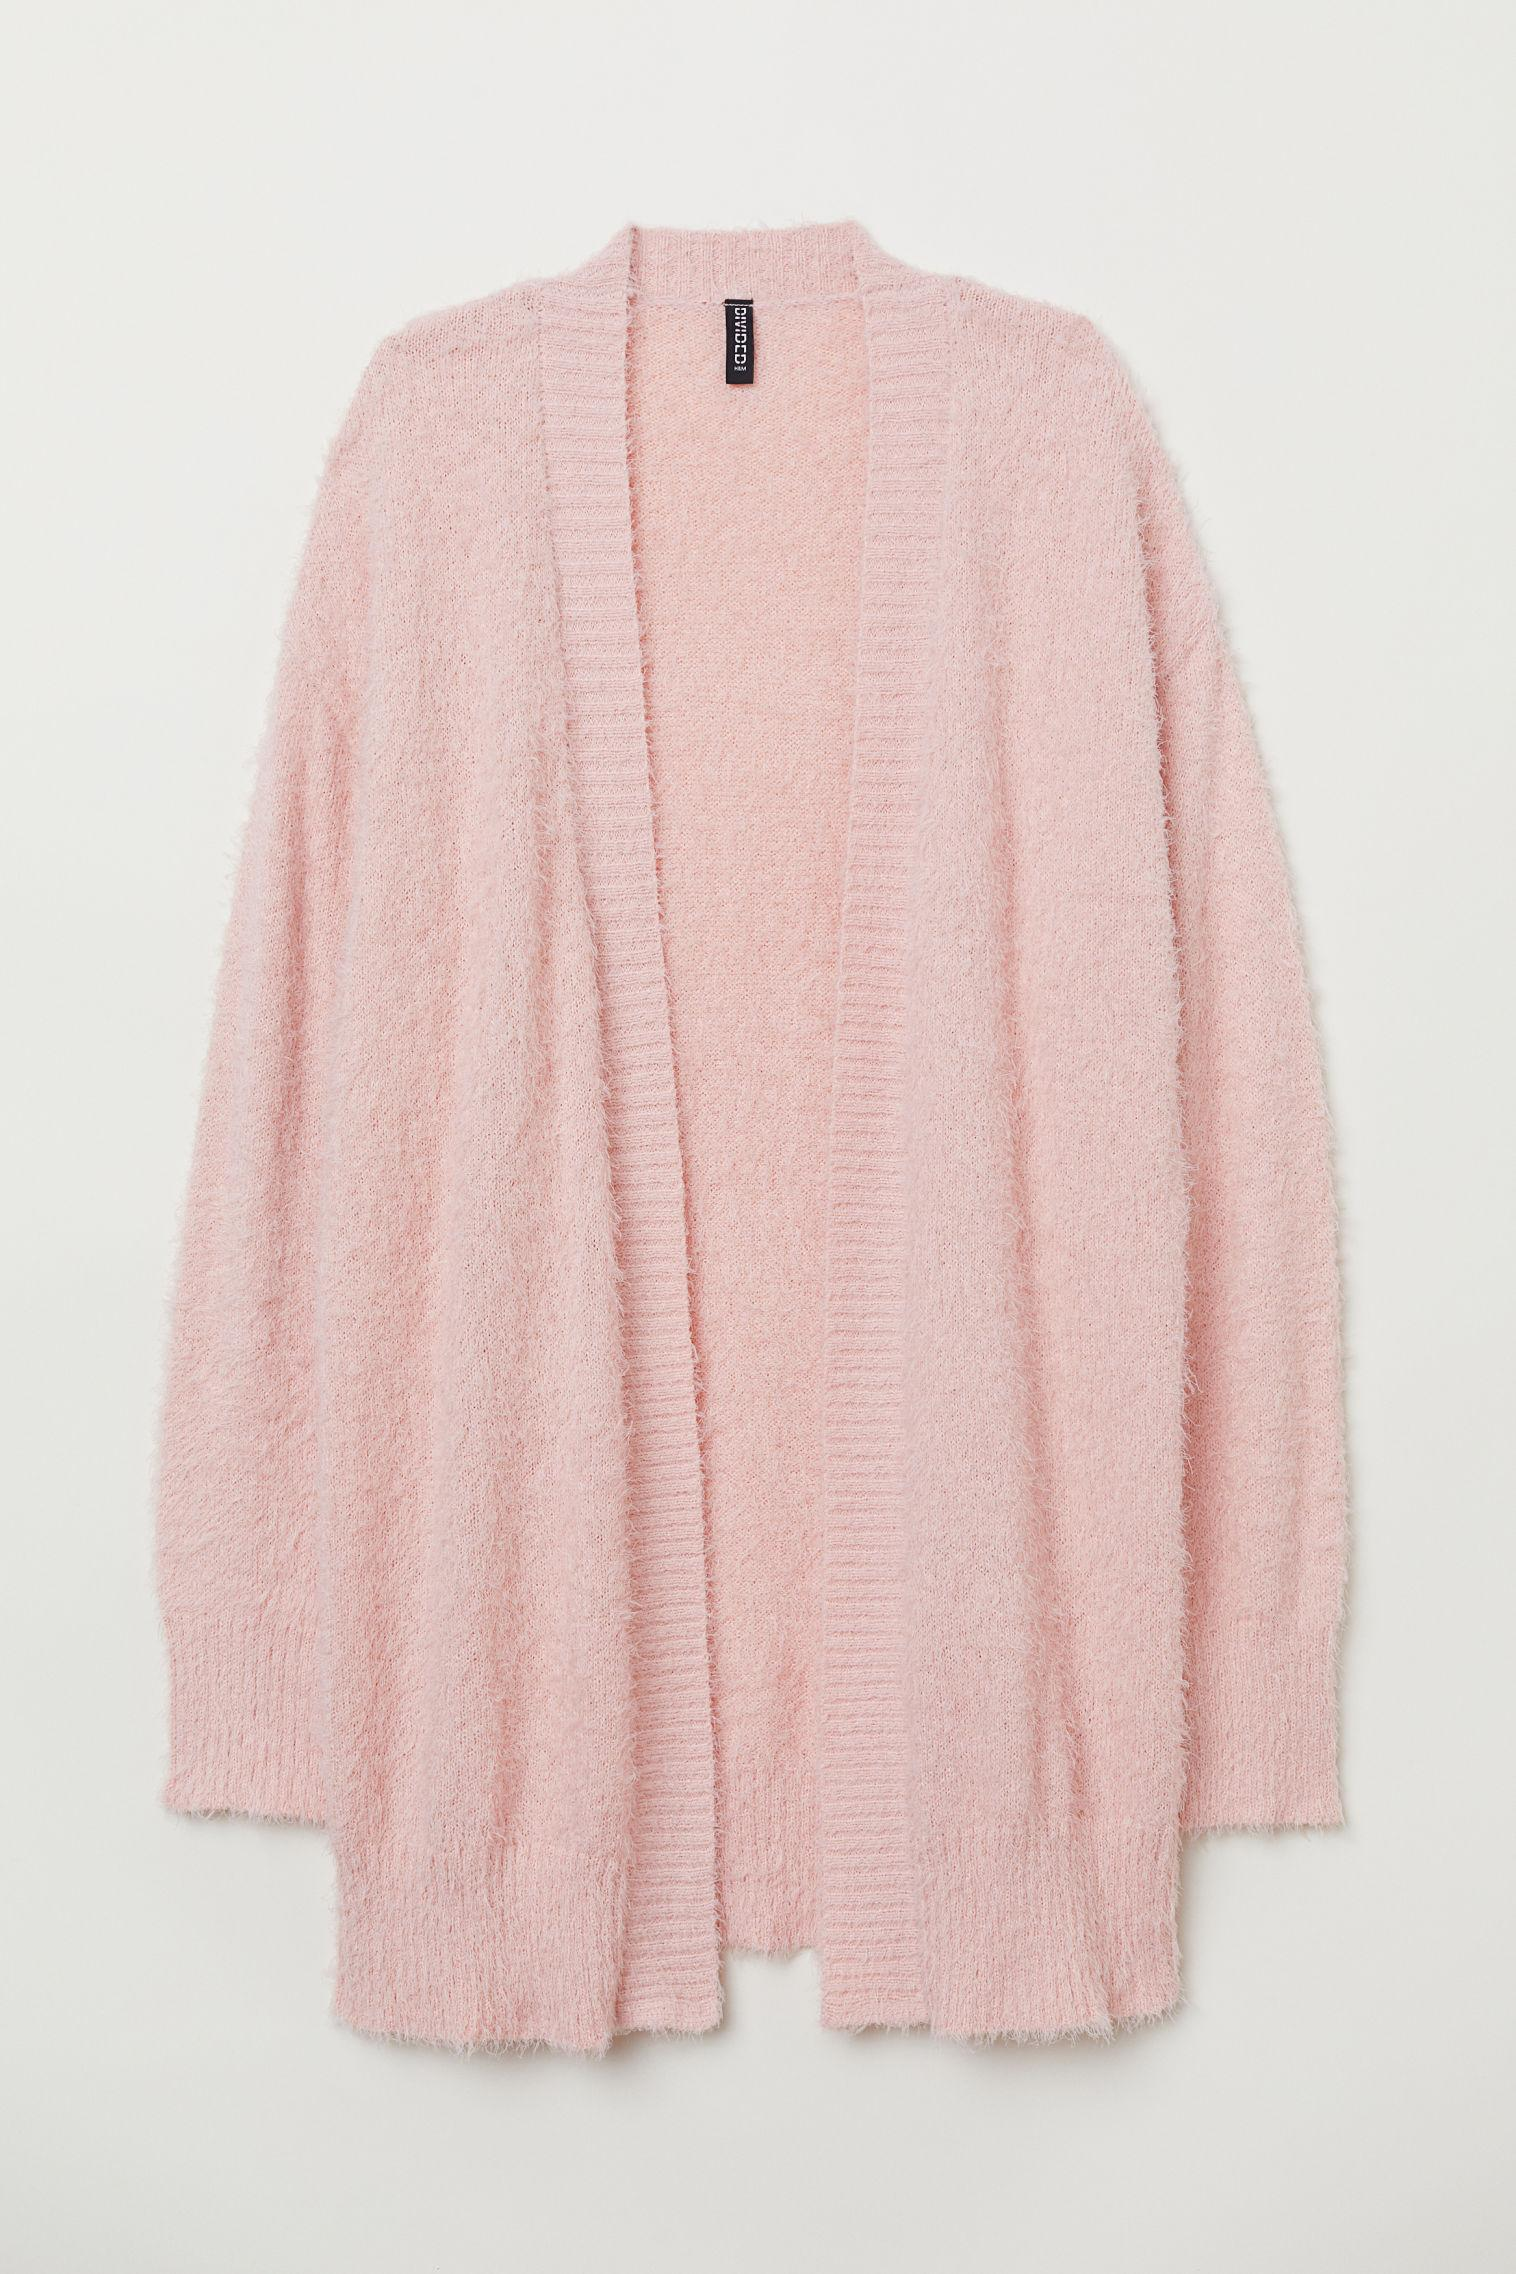 53caa16640525a H&M Flauschiger Cardigan in Pink - Lyst